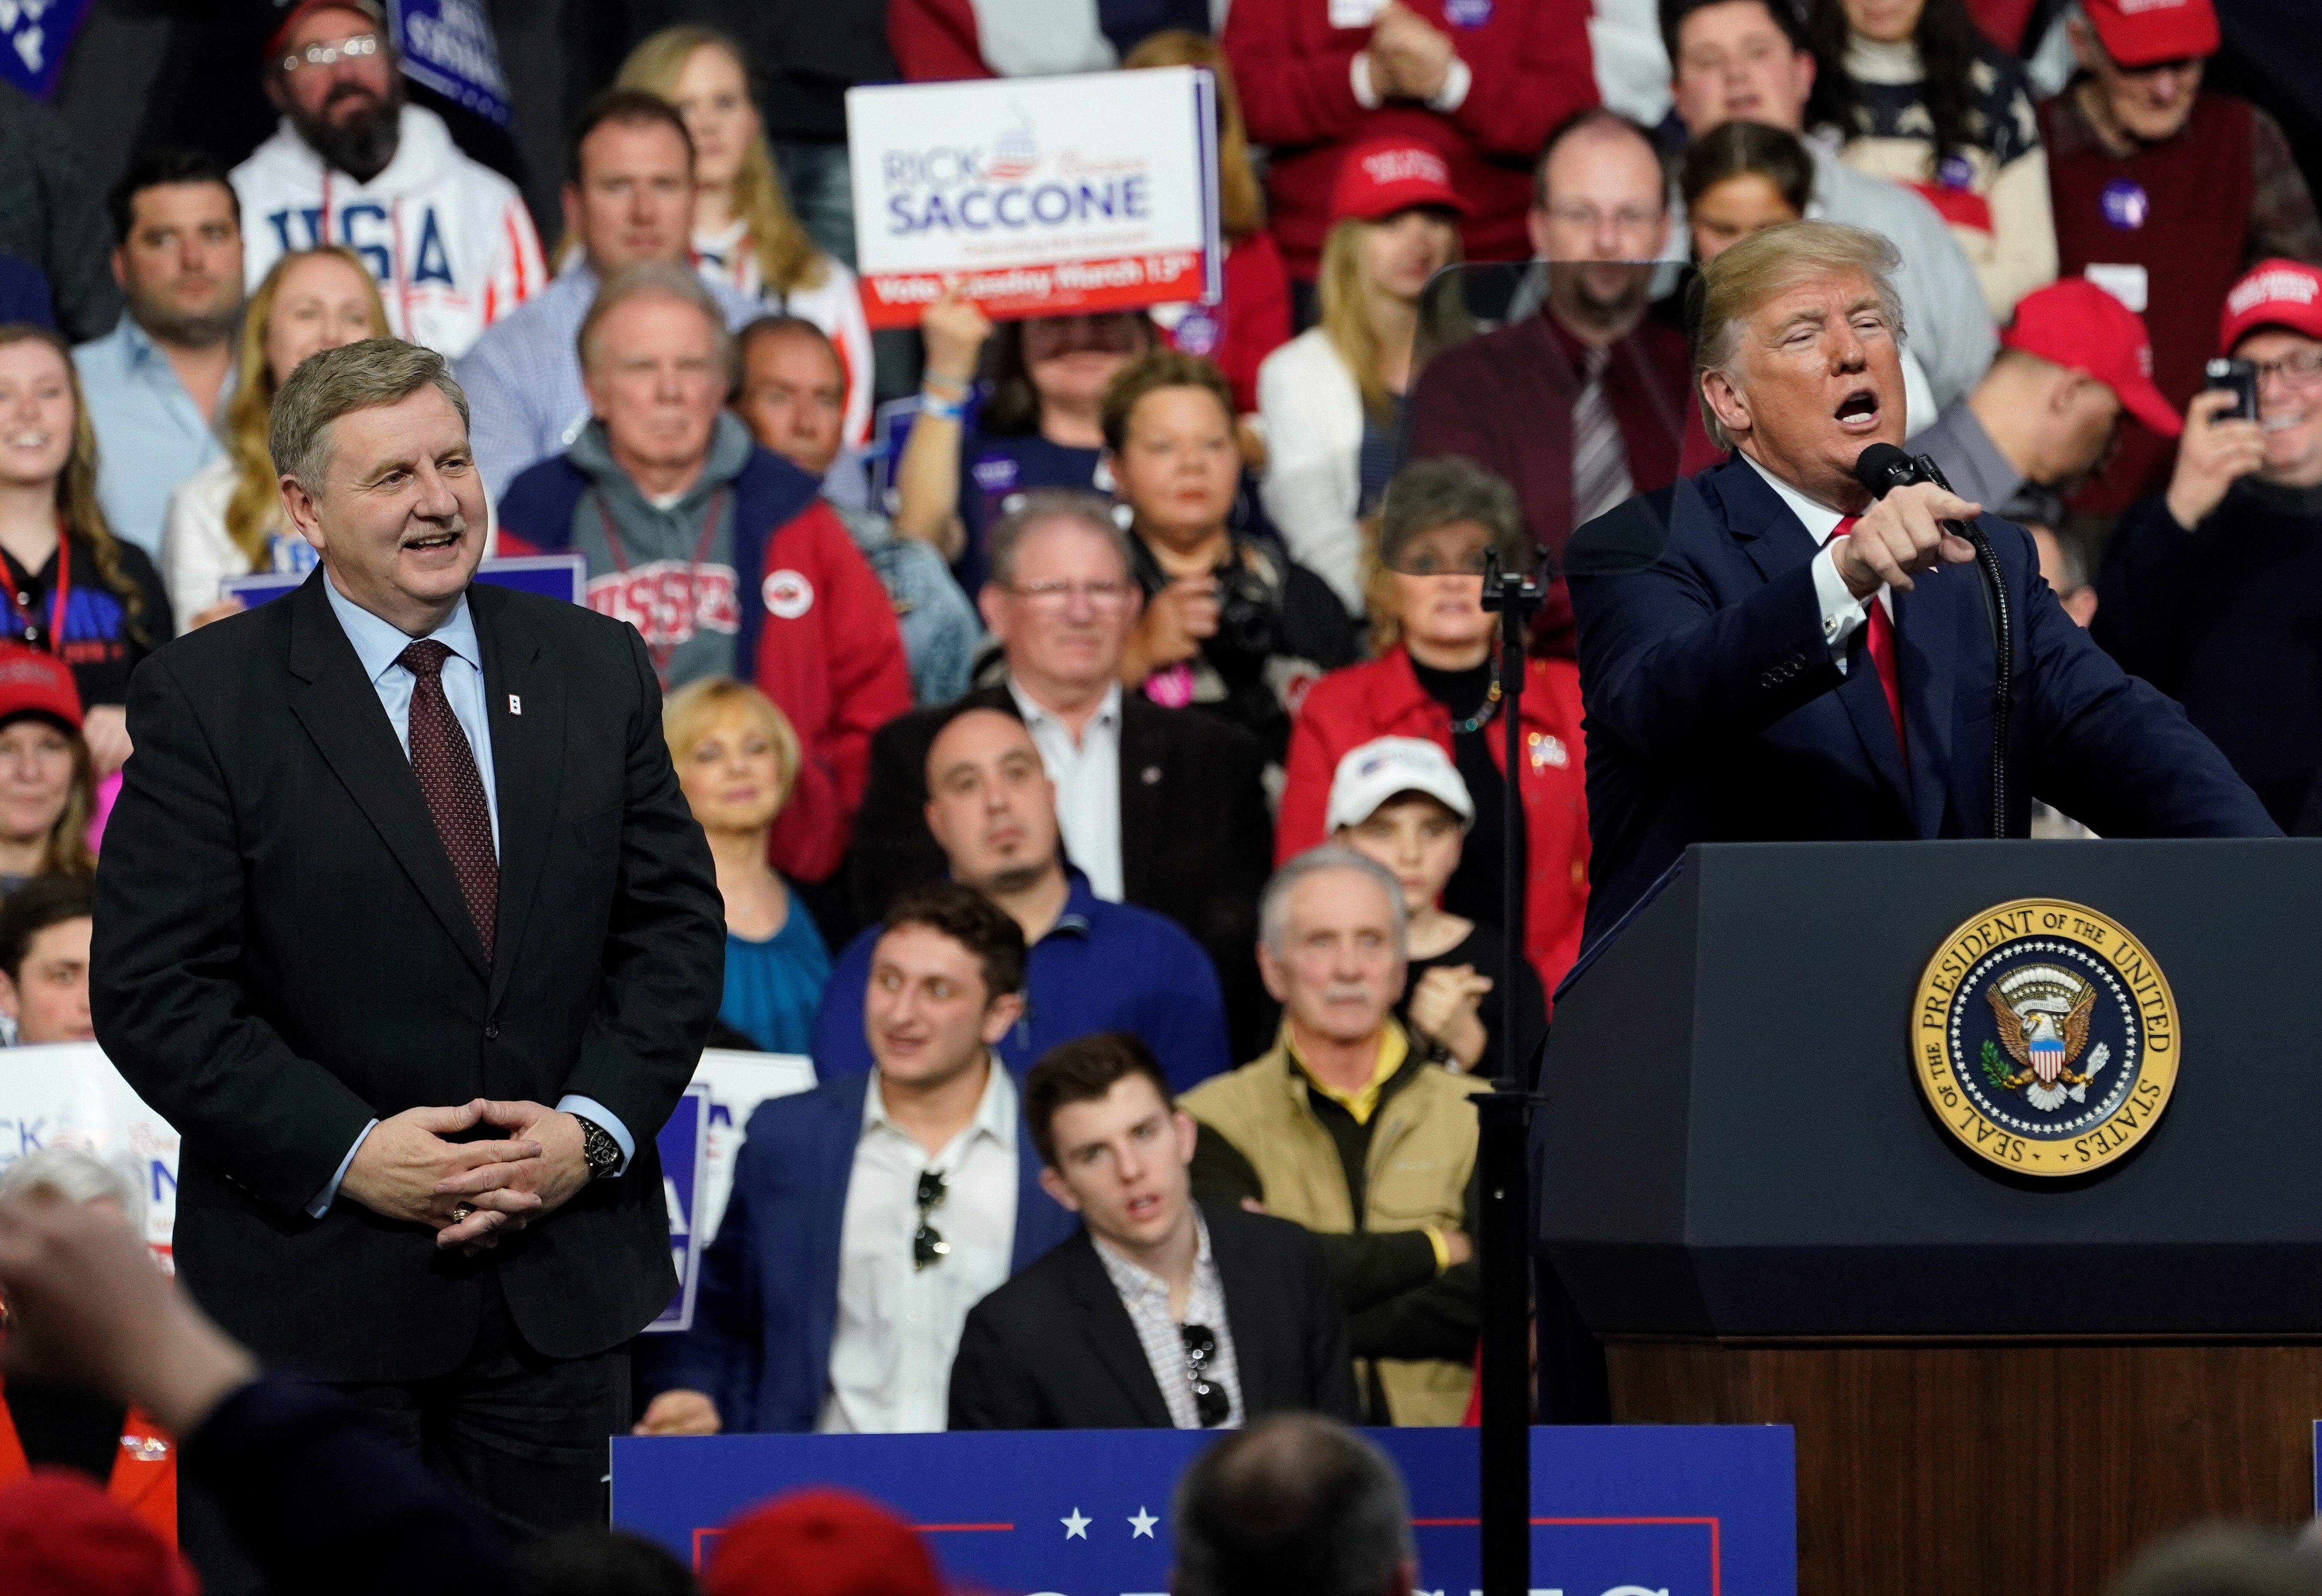 U.S. President Donald Trump speaks in support of Republican congressional candidate Rick Saccone during a Make America Great Again rally in Moon Township, Pennsylvania, U.S., March 10, 2018.      REUTERS/Joshua Roberts